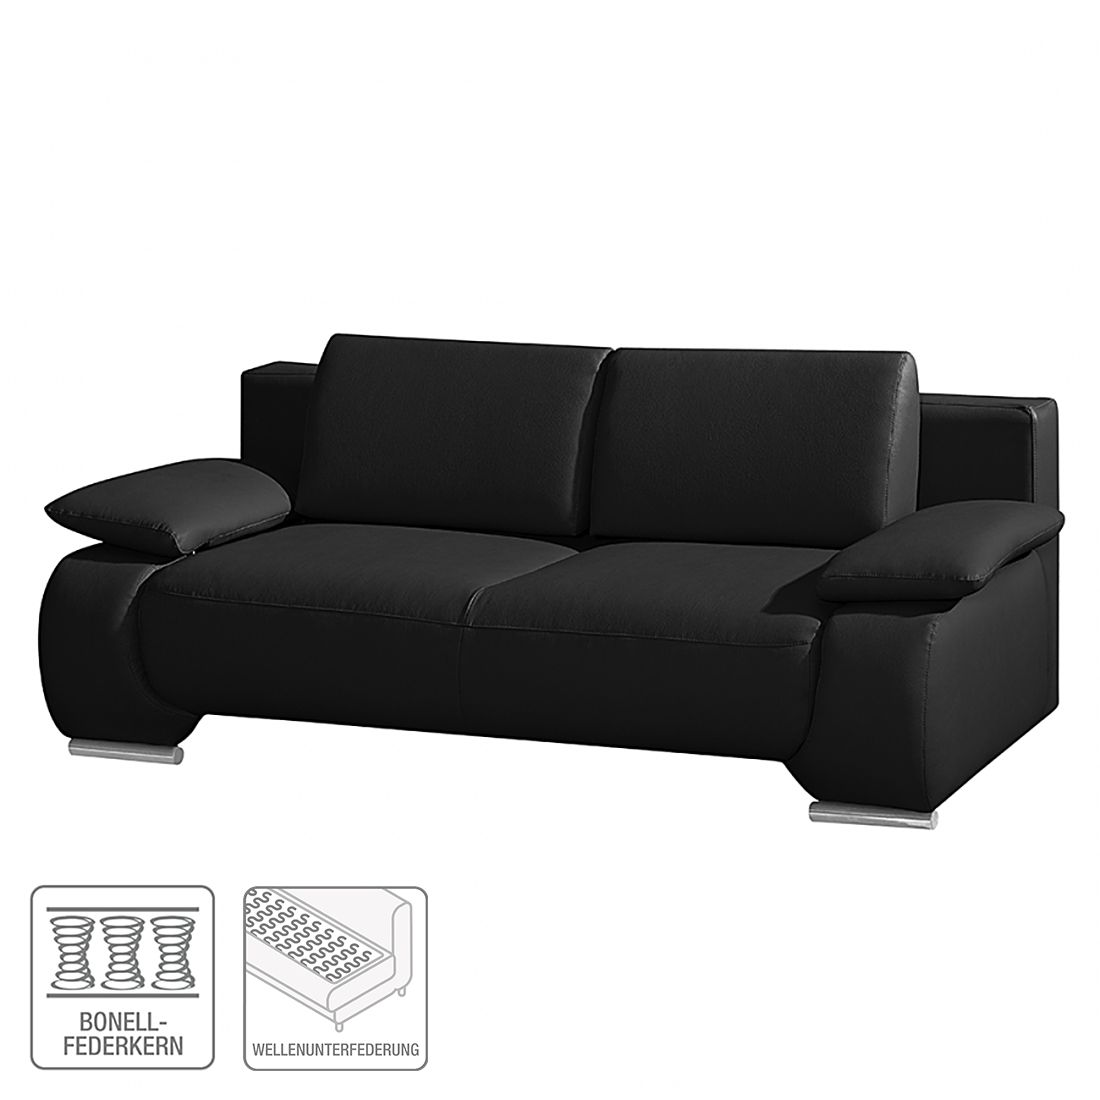 schlafsofas 150 cm breit preisvergleiche. Black Bedroom Furniture Sets. Home Design Ideas